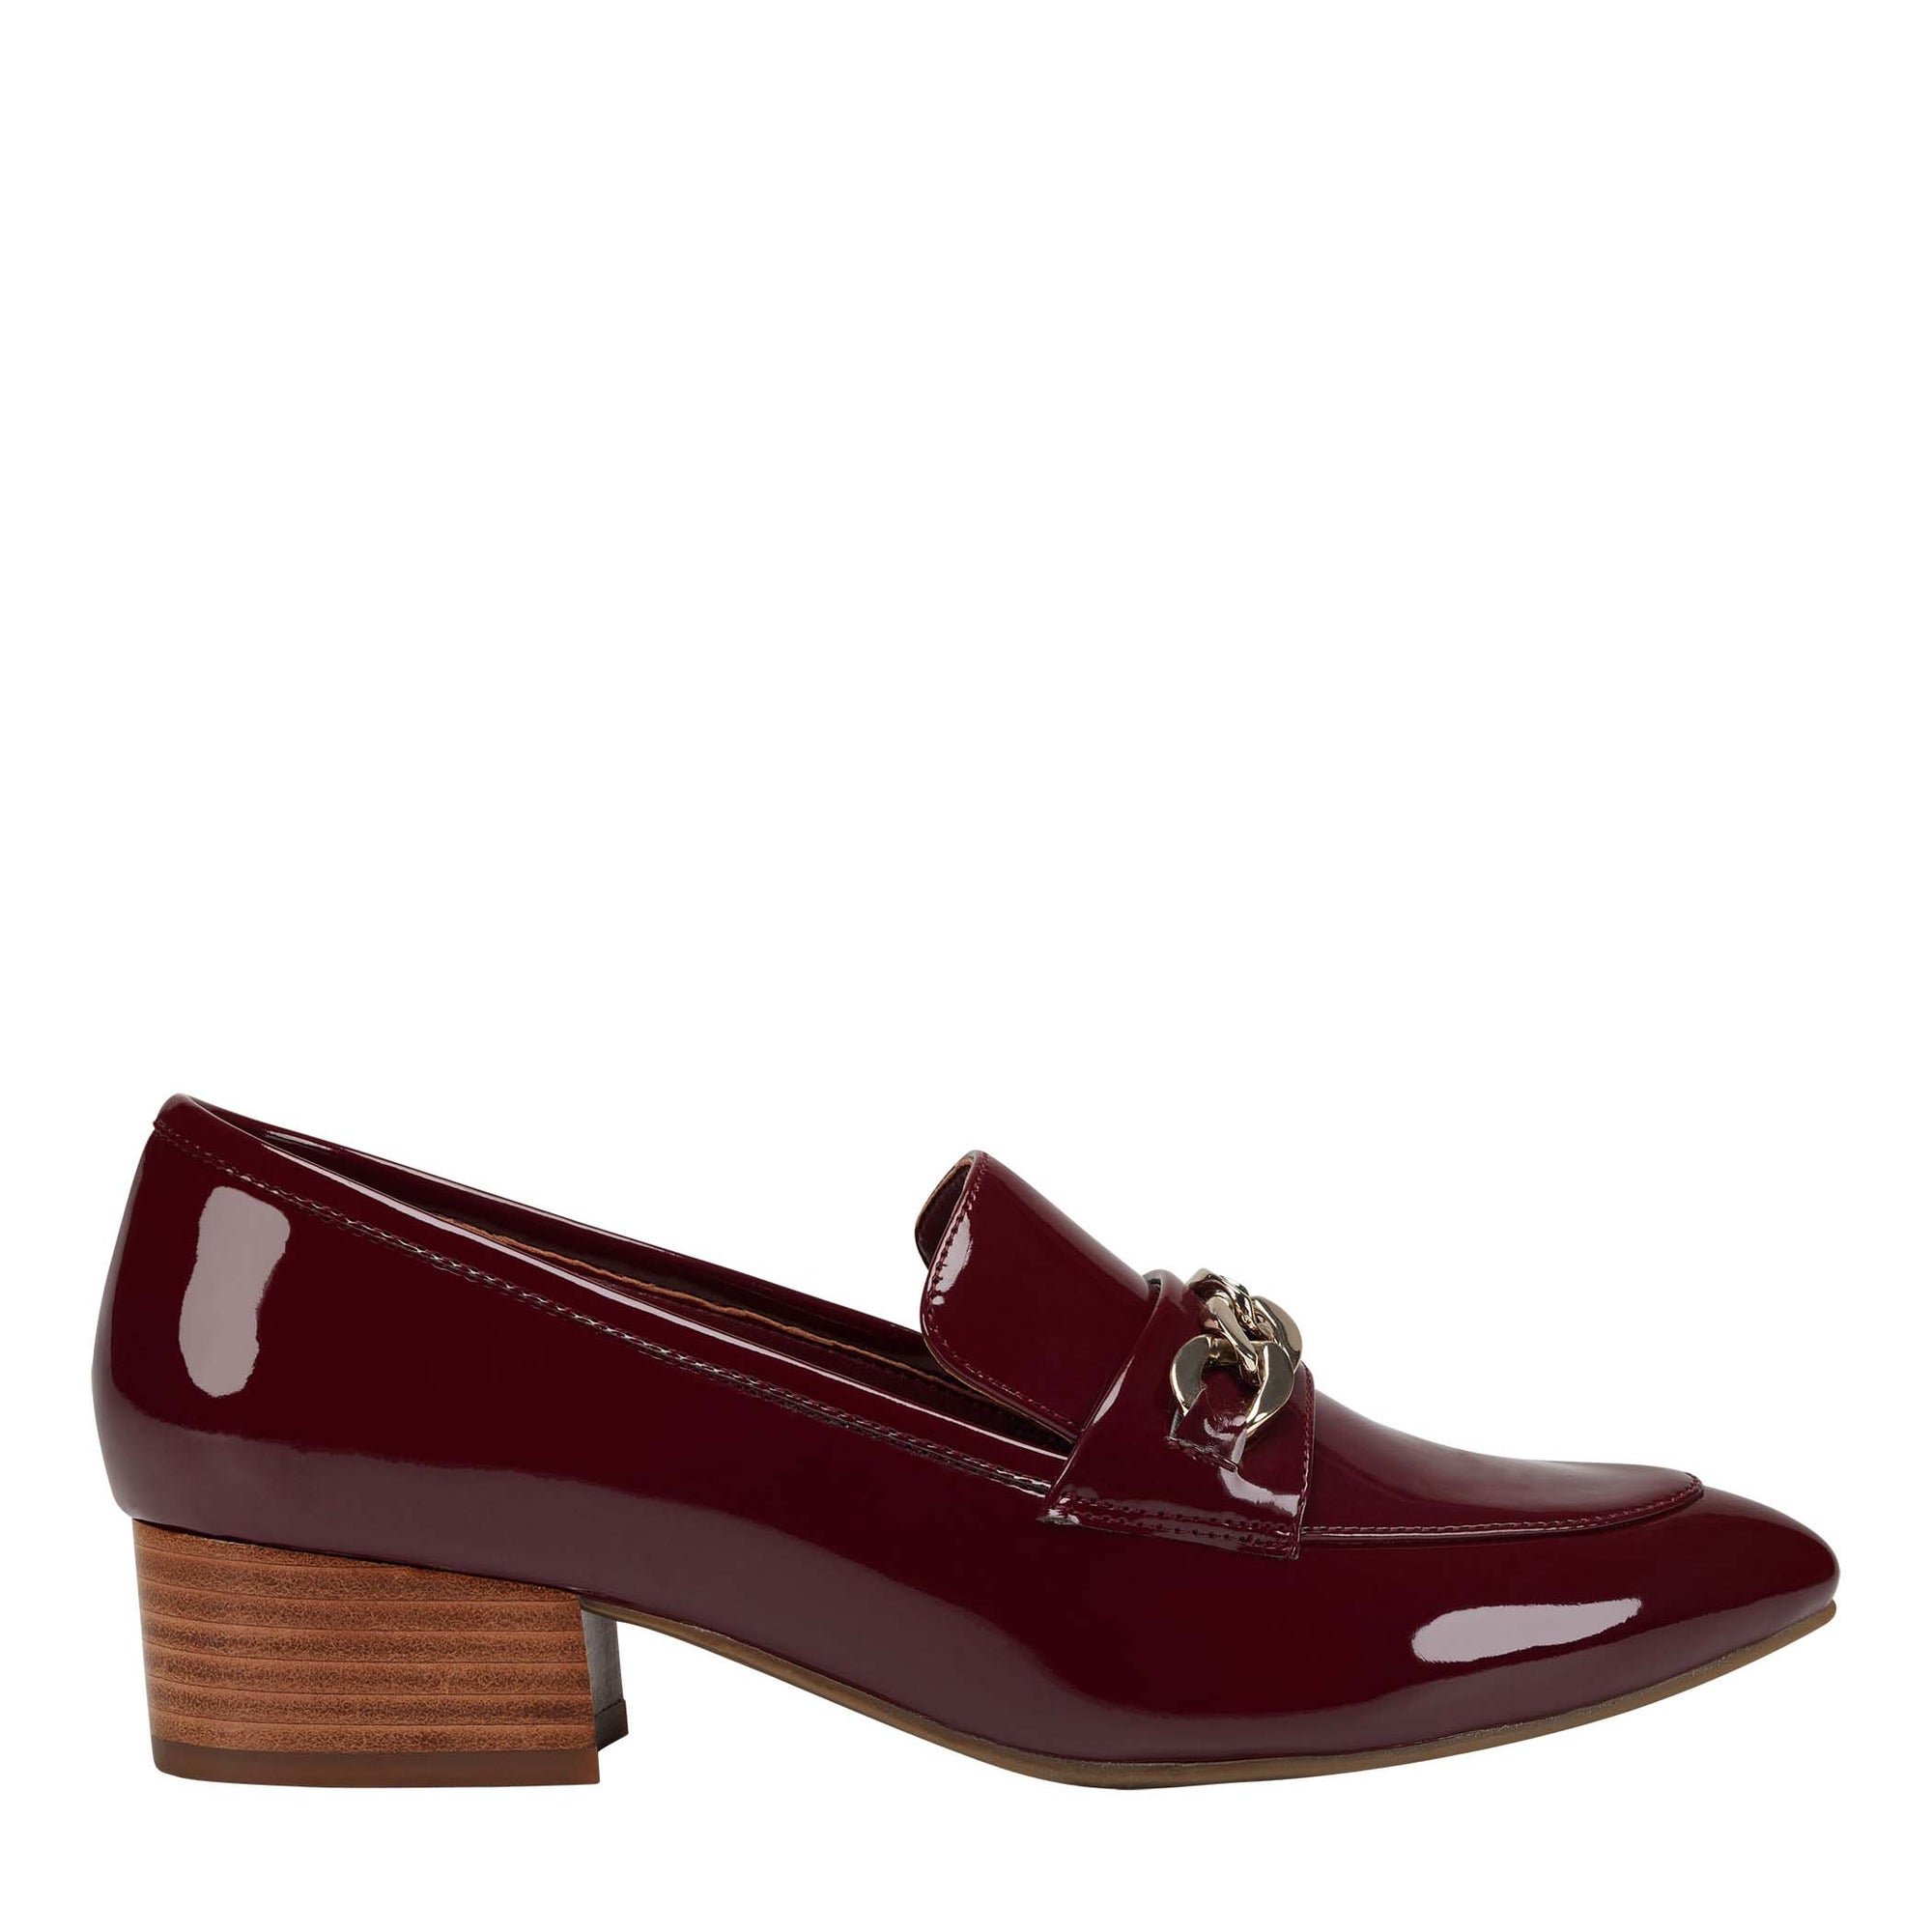 Leker Chain Loafer